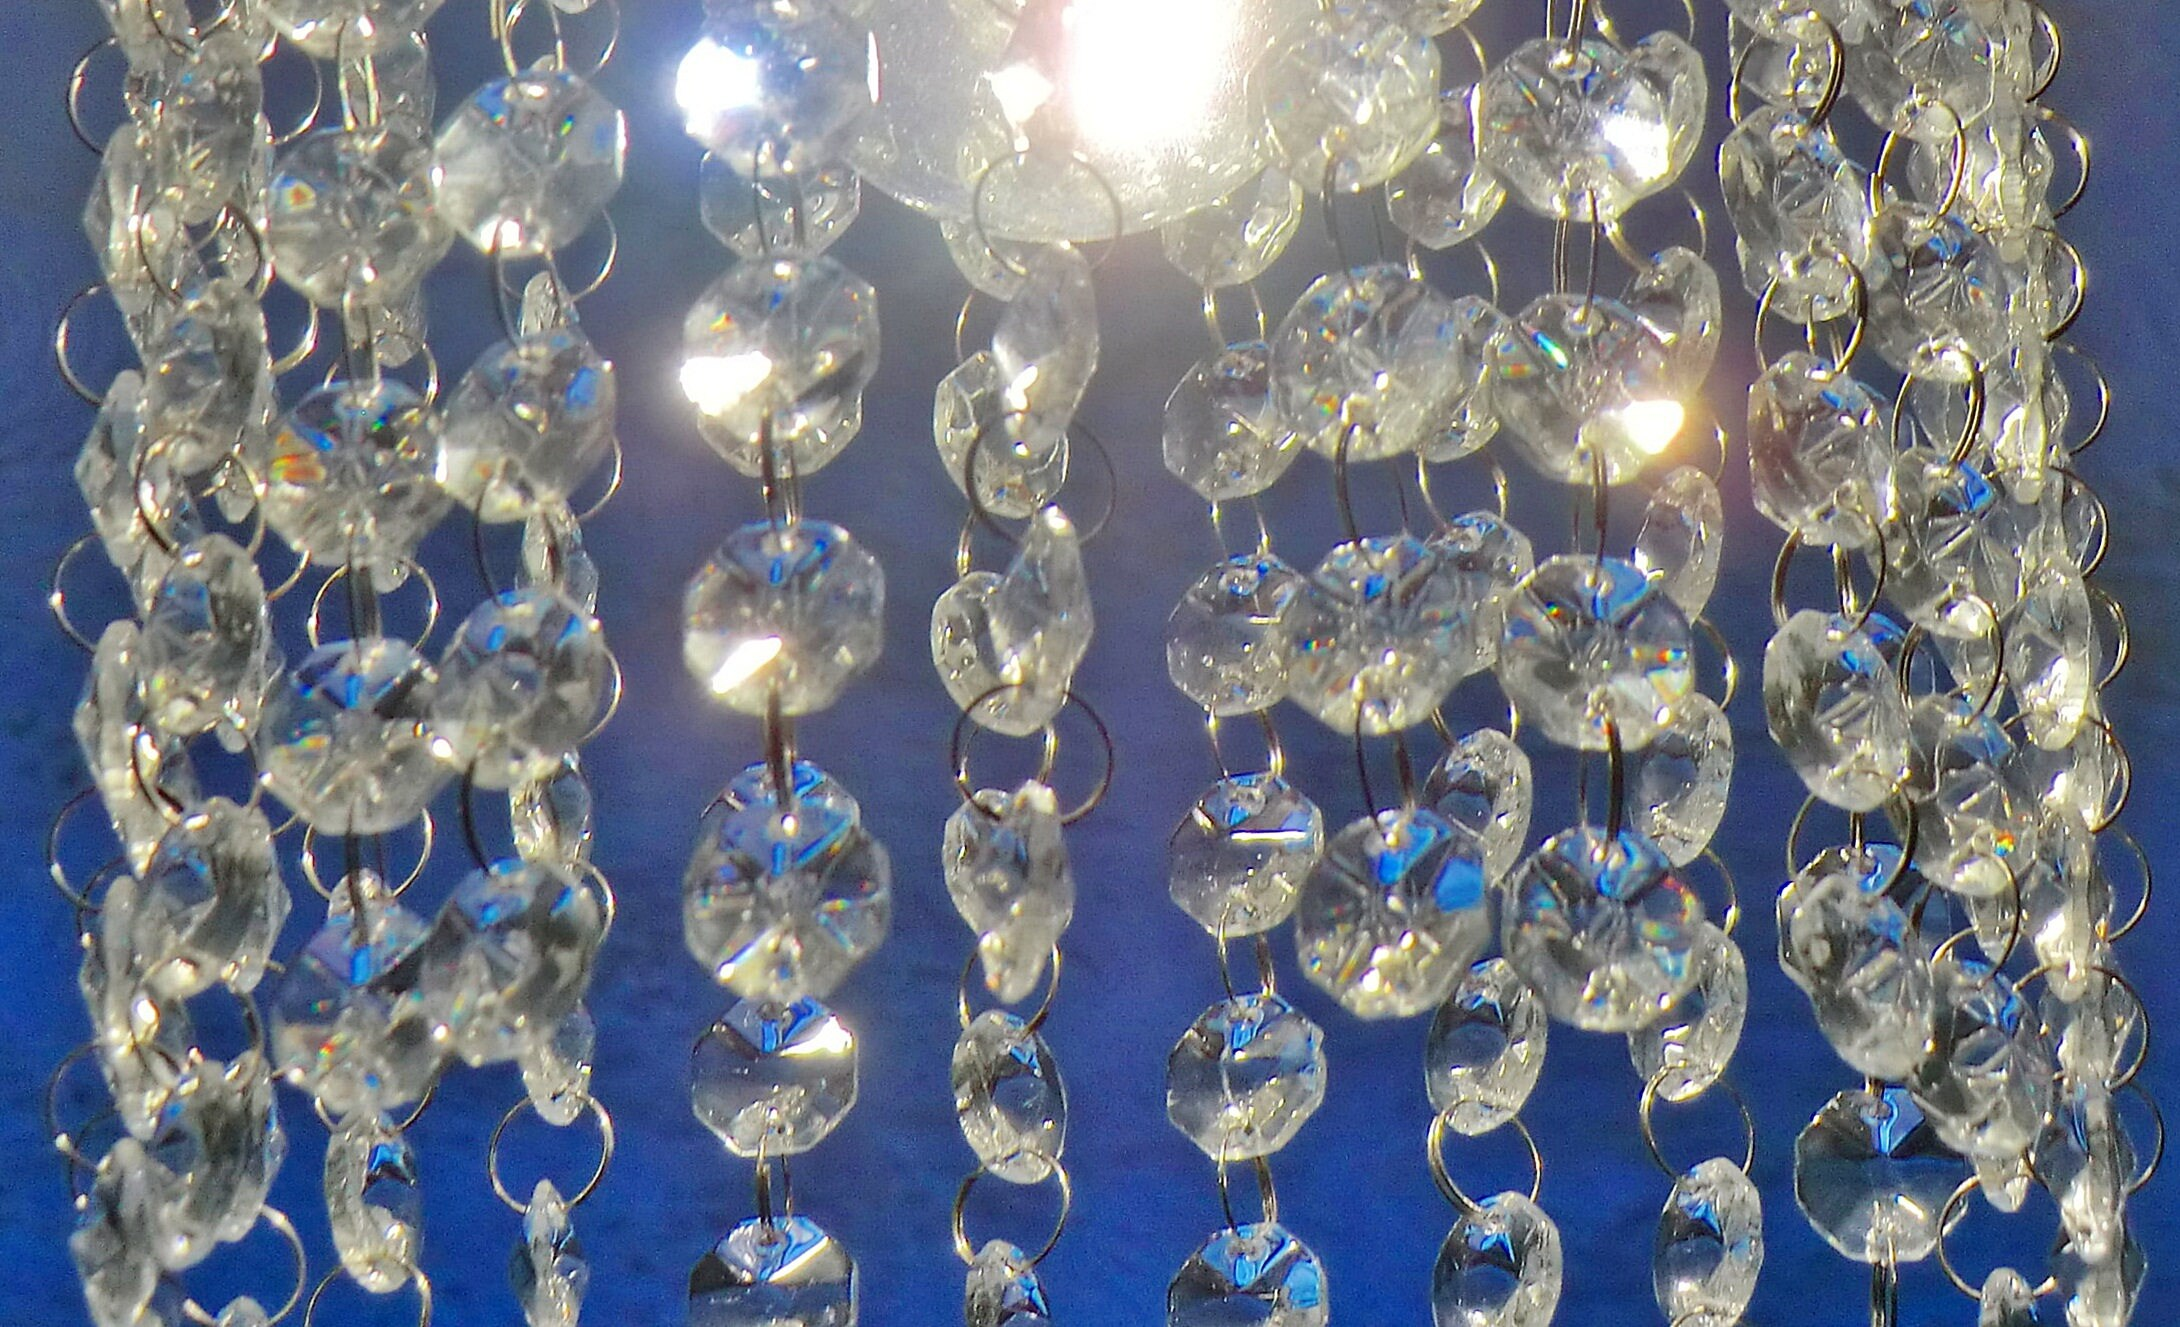 16mm Clear Chandelier Drops Lamp Light Lamp Replacement Parts